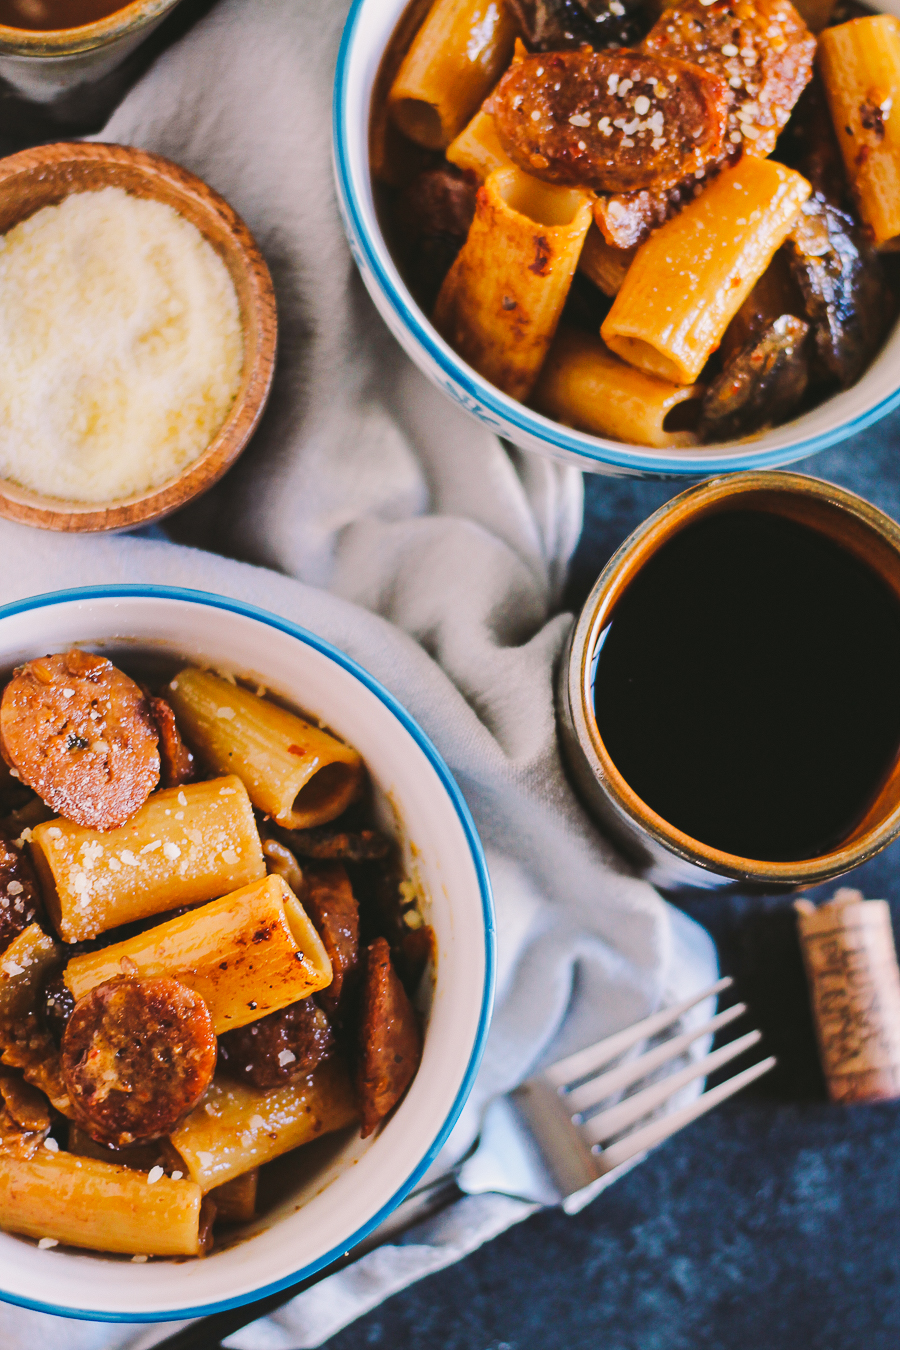 rigatoni tossed into a creamy marsala pan sauce with spicy italian sausage & mushrooms, cozy enough for a date night at home & easy enough to throw together for a spontaneous weeknight dinner with friends   pasta recipe   creamy marsala pasta sauce   easy pasta recipe   date night recipe   date night idea